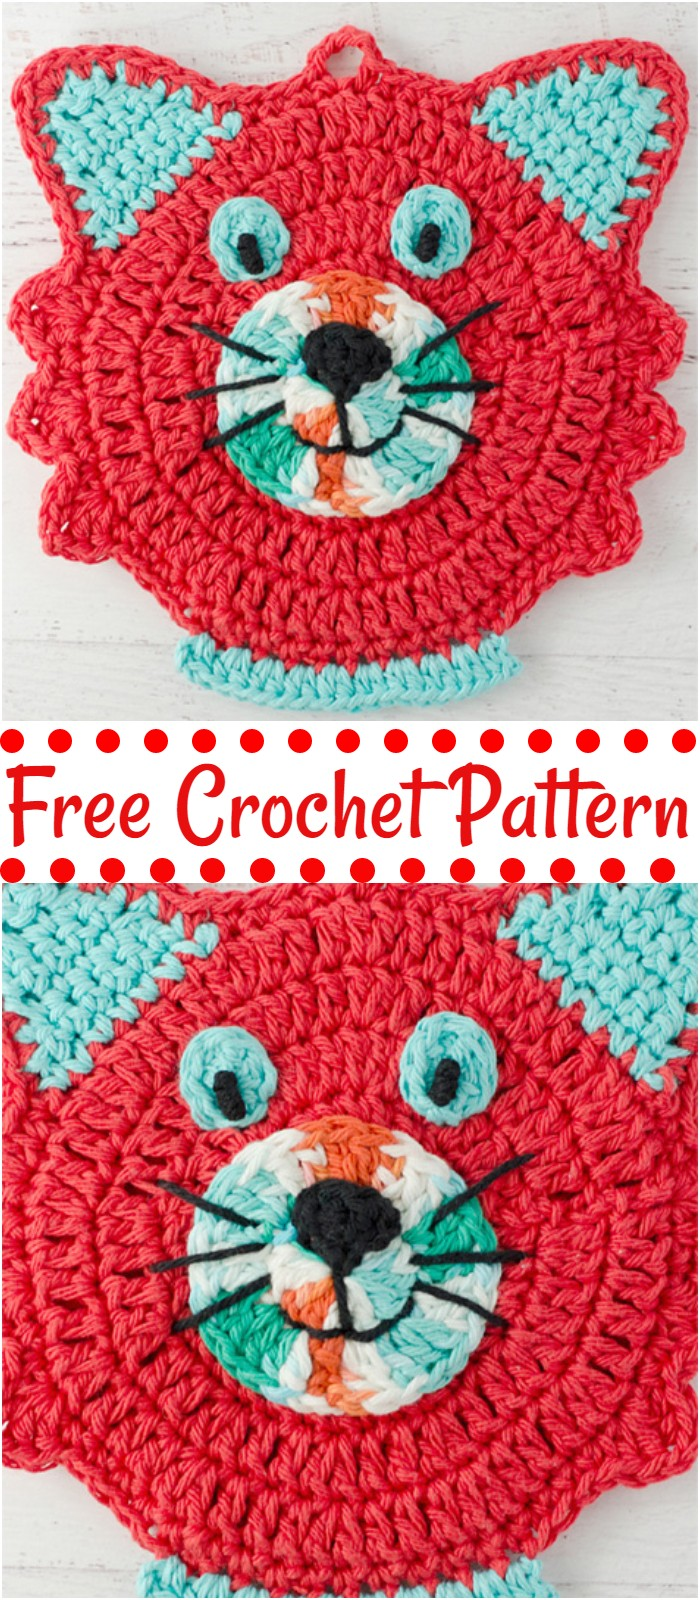 Free Crochet PotHolder Patterns For Your Kitchen - Craft Ideas #potholders